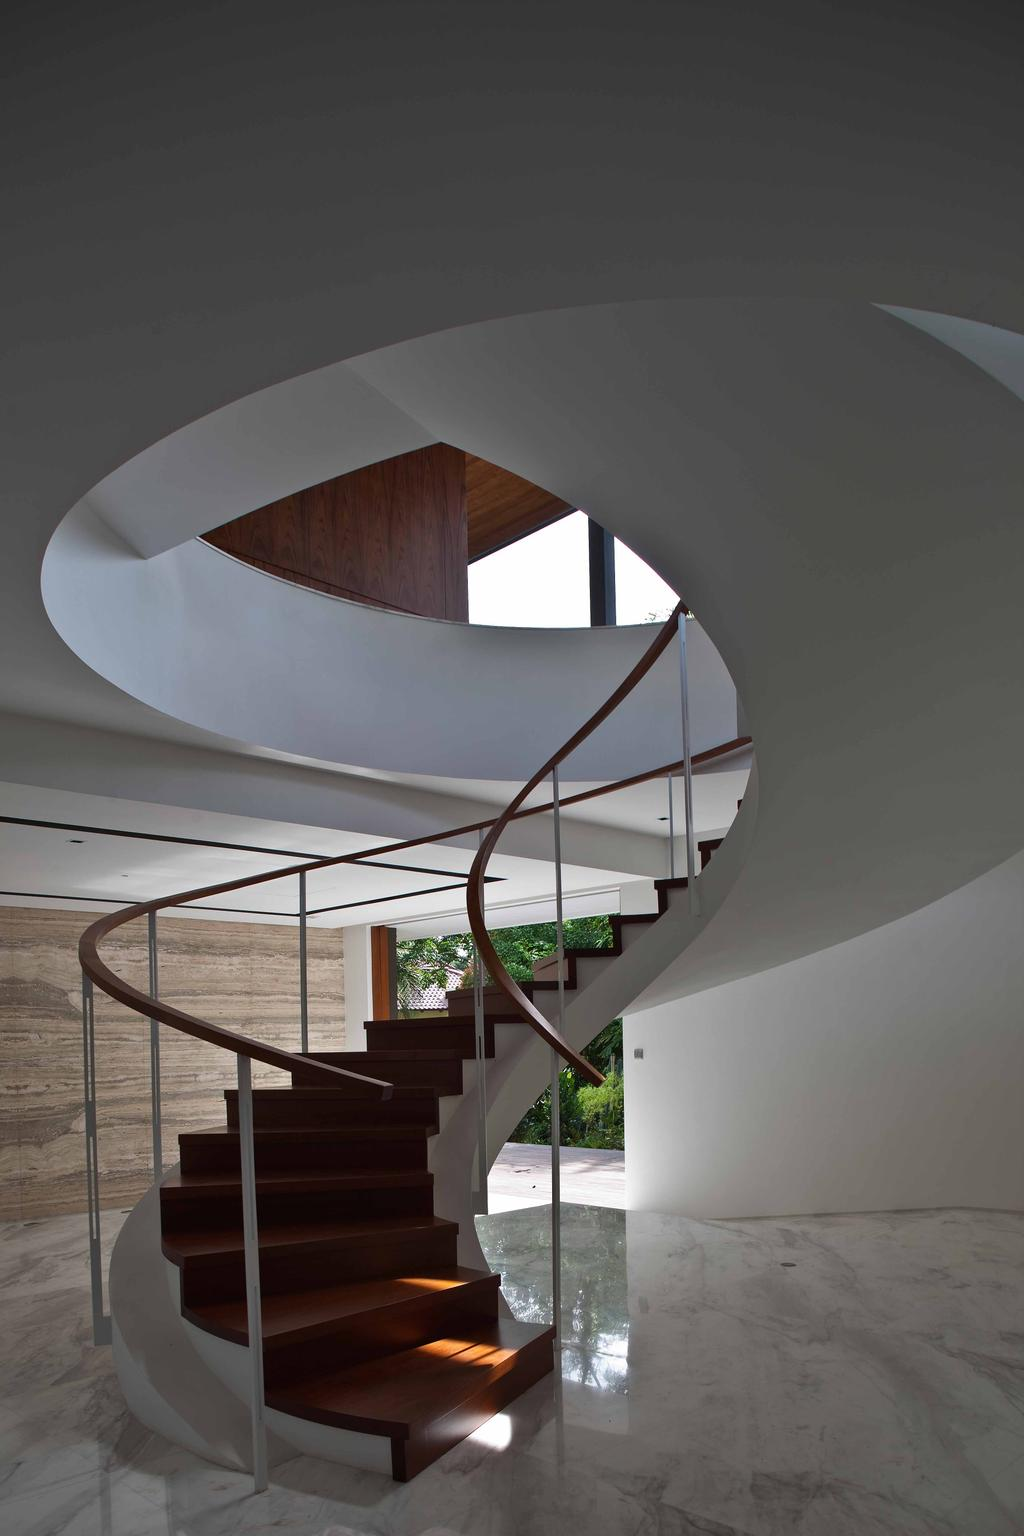 Contemporary, Landed, Bukit Timah (Water-Cooled House), Architect, Wallflower Architecture + Design, Curve Stairway, Twisted Stairway, Marble Flooring, Wooden Steps, Brown Steps, Brown Stairway Railing, Brown Railing, Railing